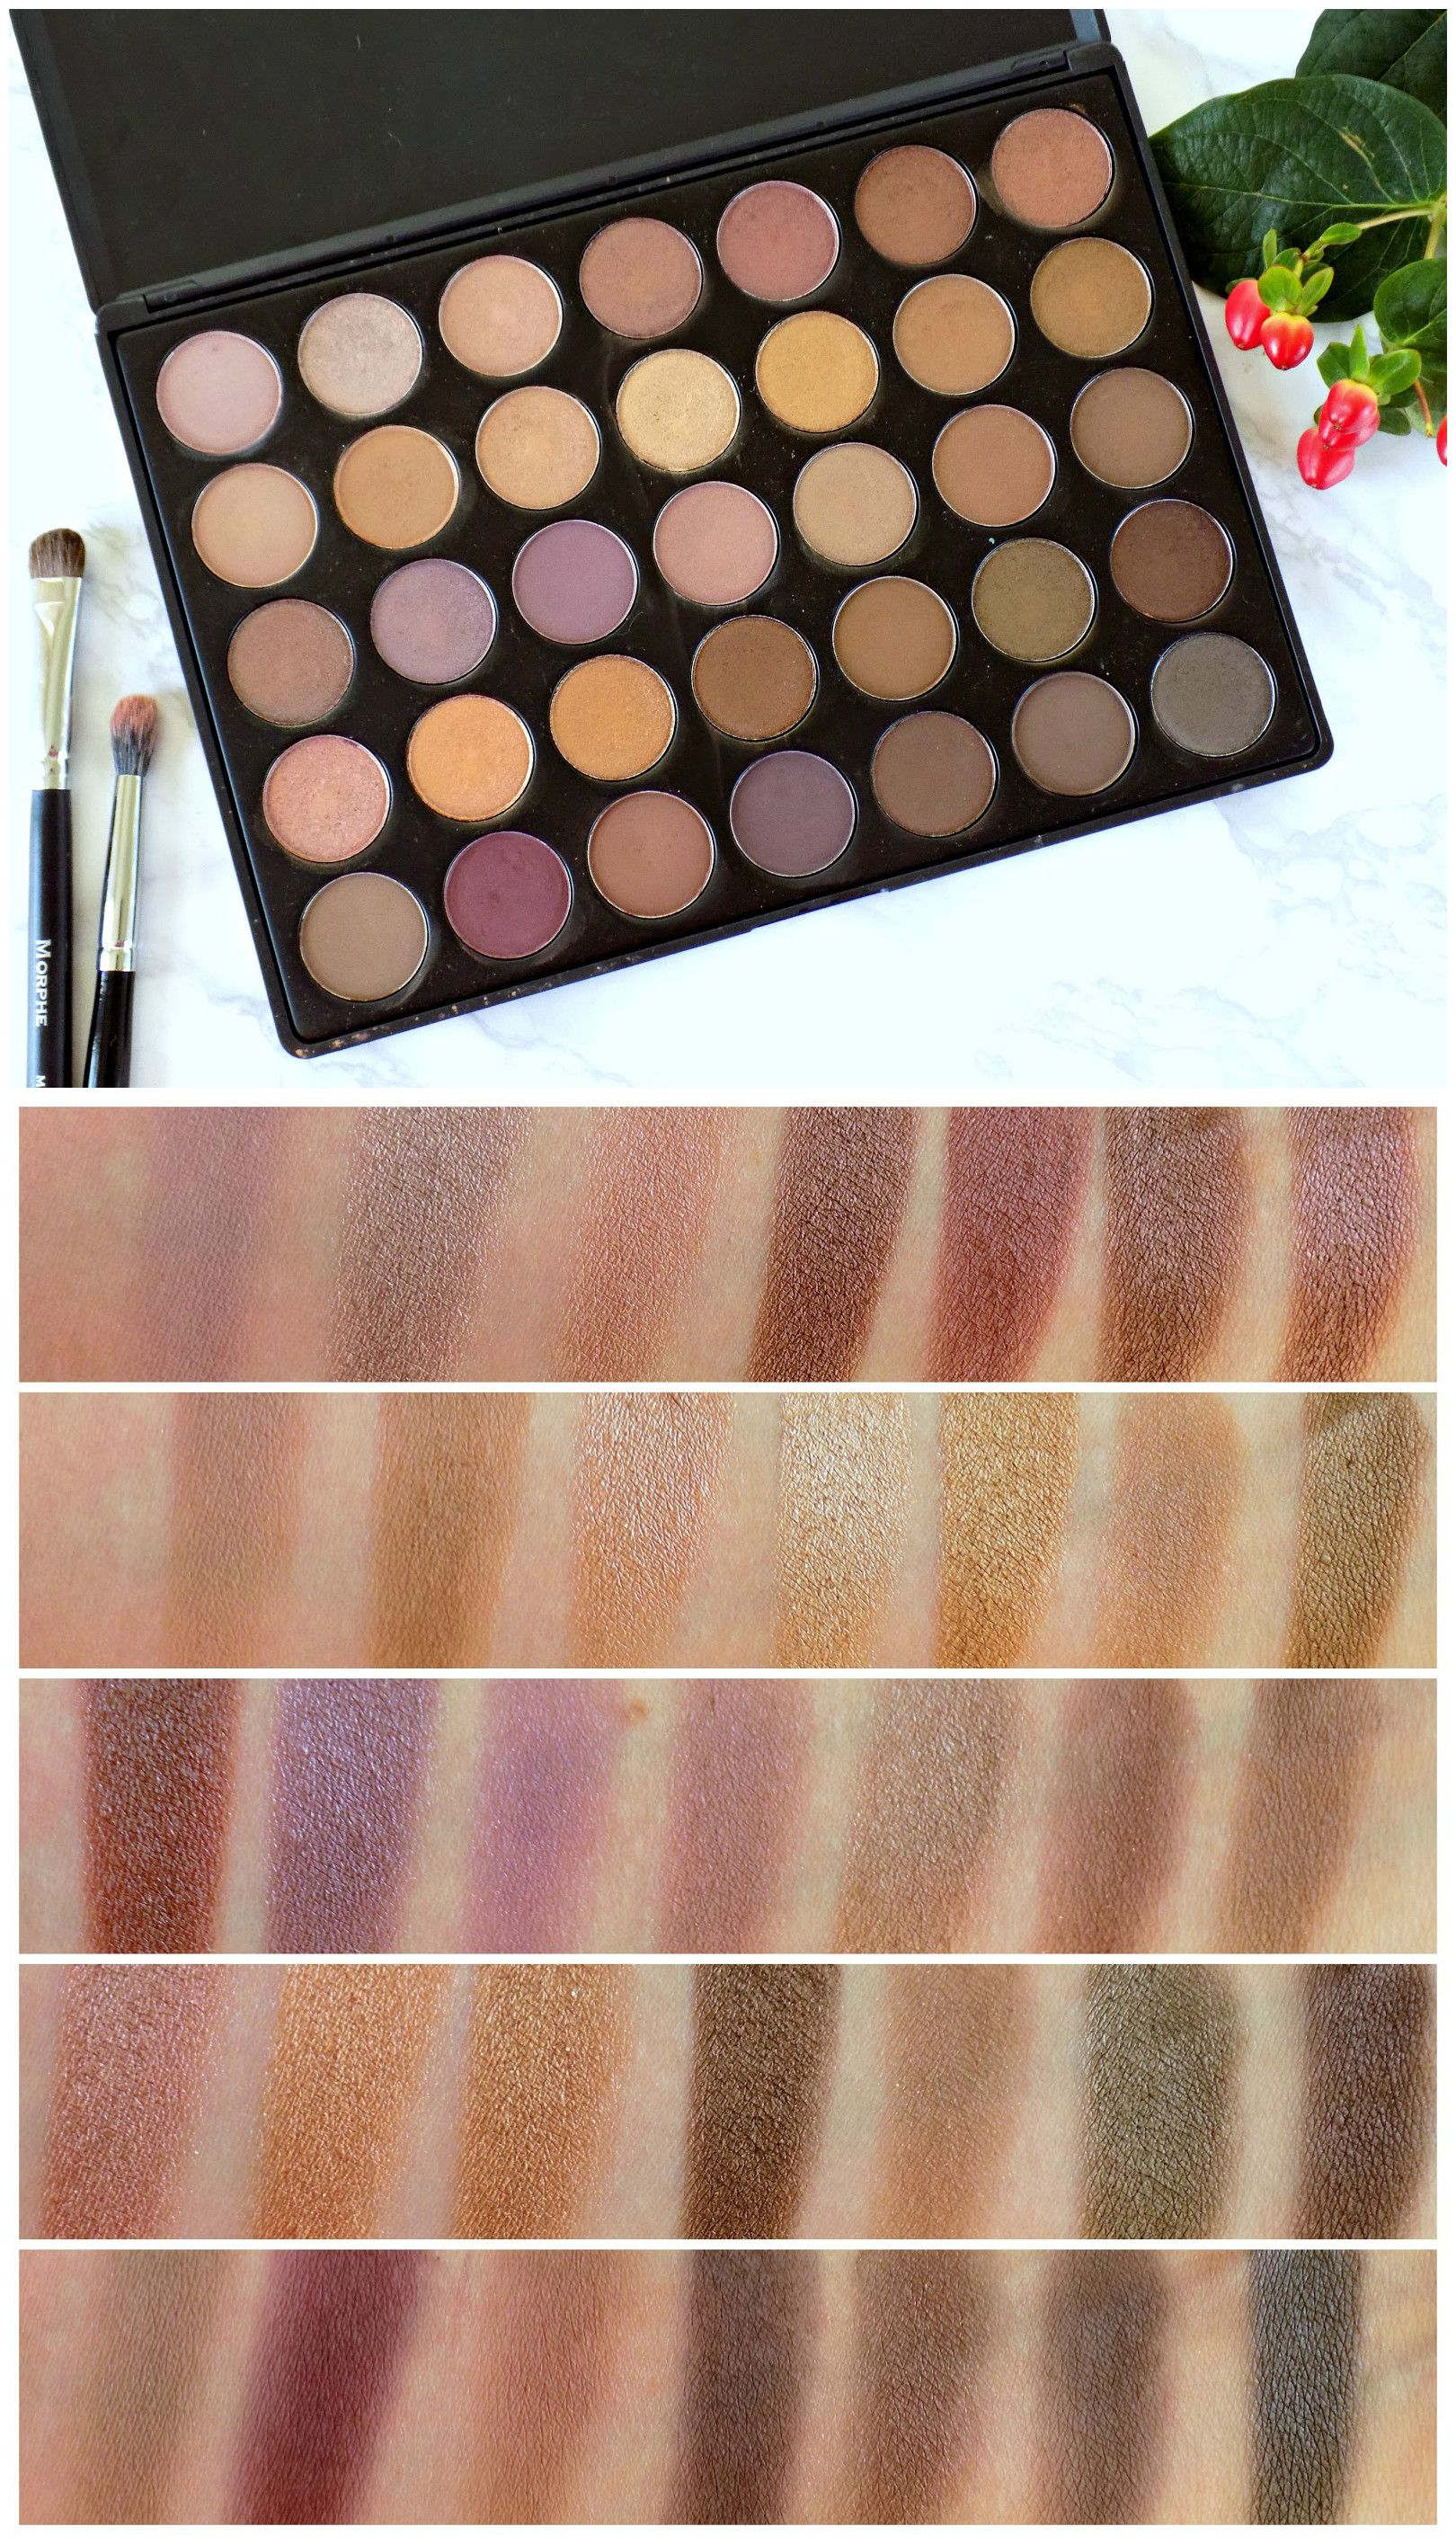 Morphe 35k eyeshadow palette review beauty in bold - Morphe 35t Palette Swatches